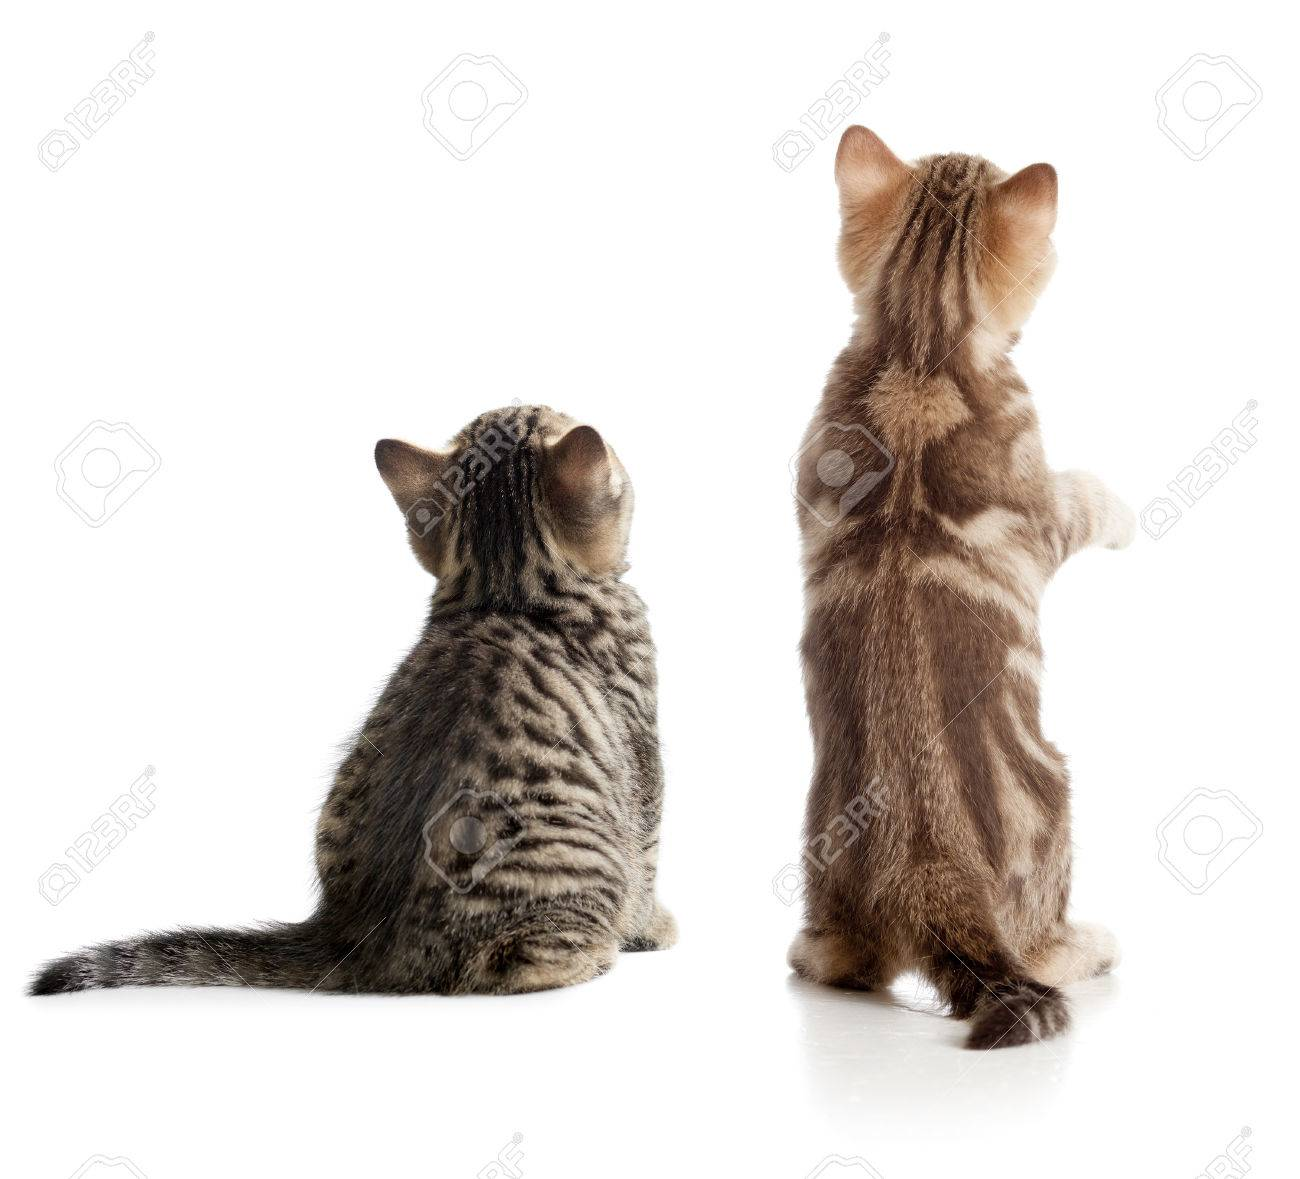 Cat back view. Two kittens sitting isolated. - 57346248